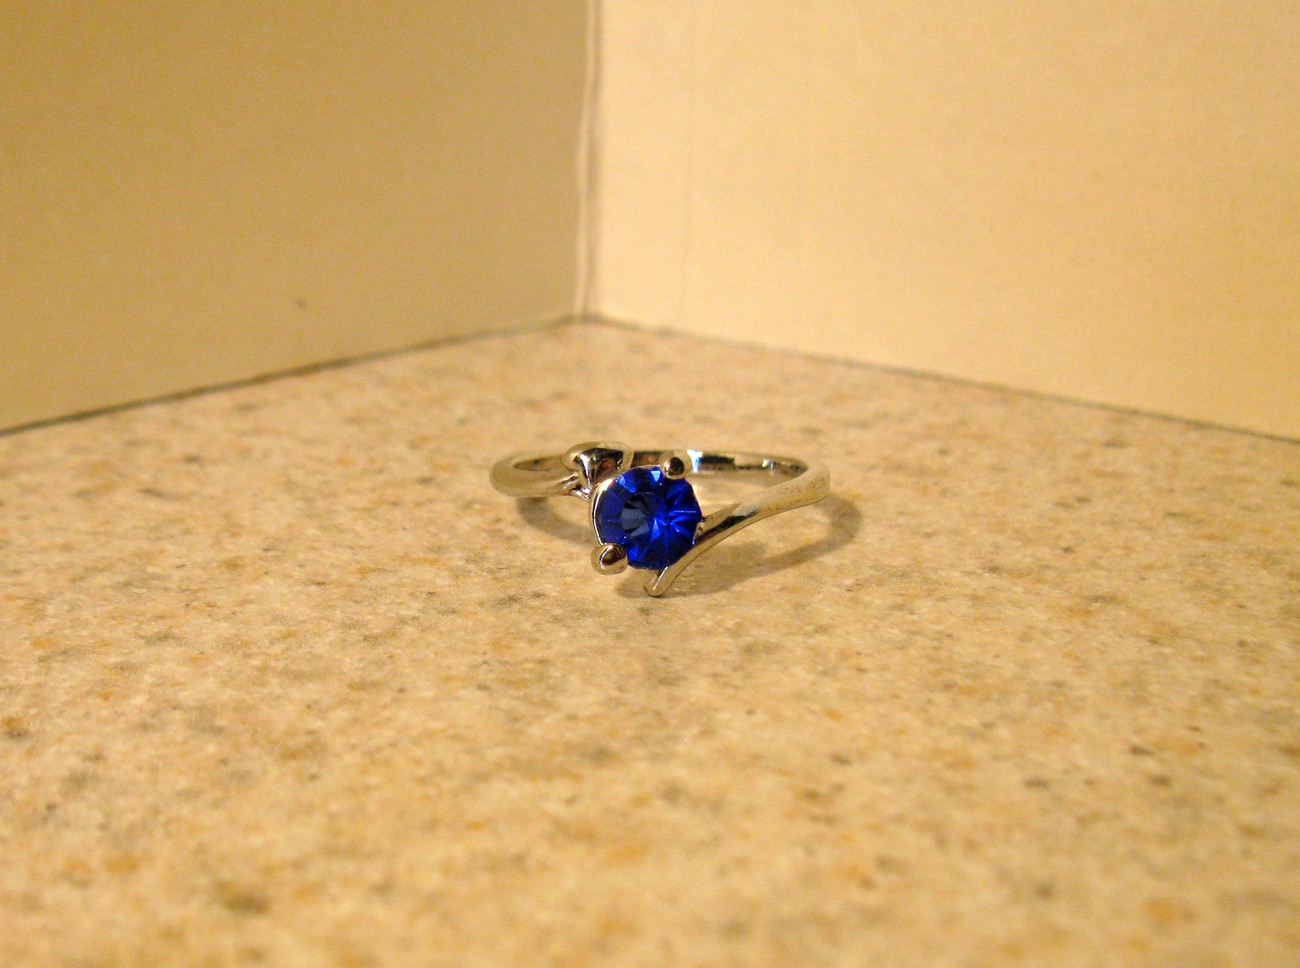 RING WOMENS LADIES GEMSTONE BLUE SAPPHIRE SIZE 6.5 #168